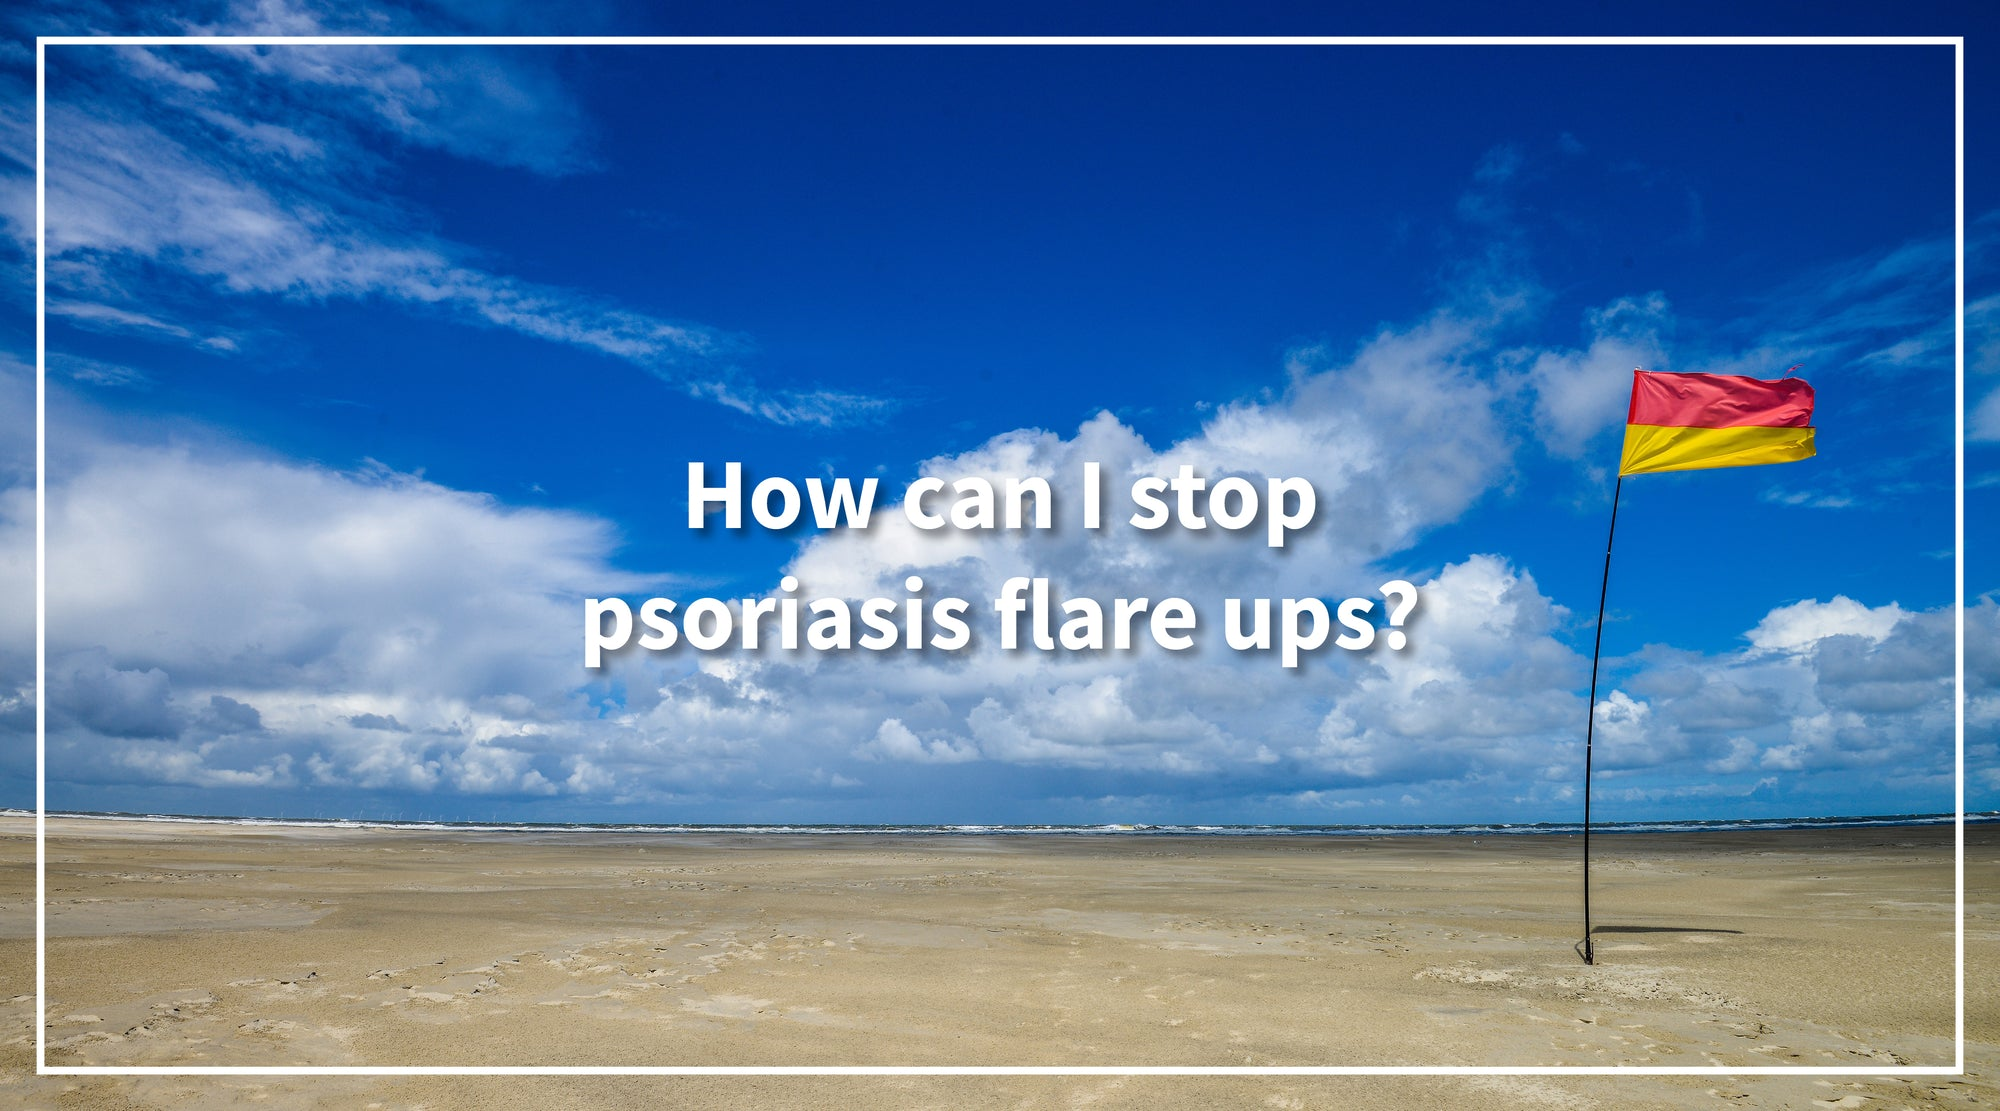 Solbari blog: How can I stop psoriasis flare ups?